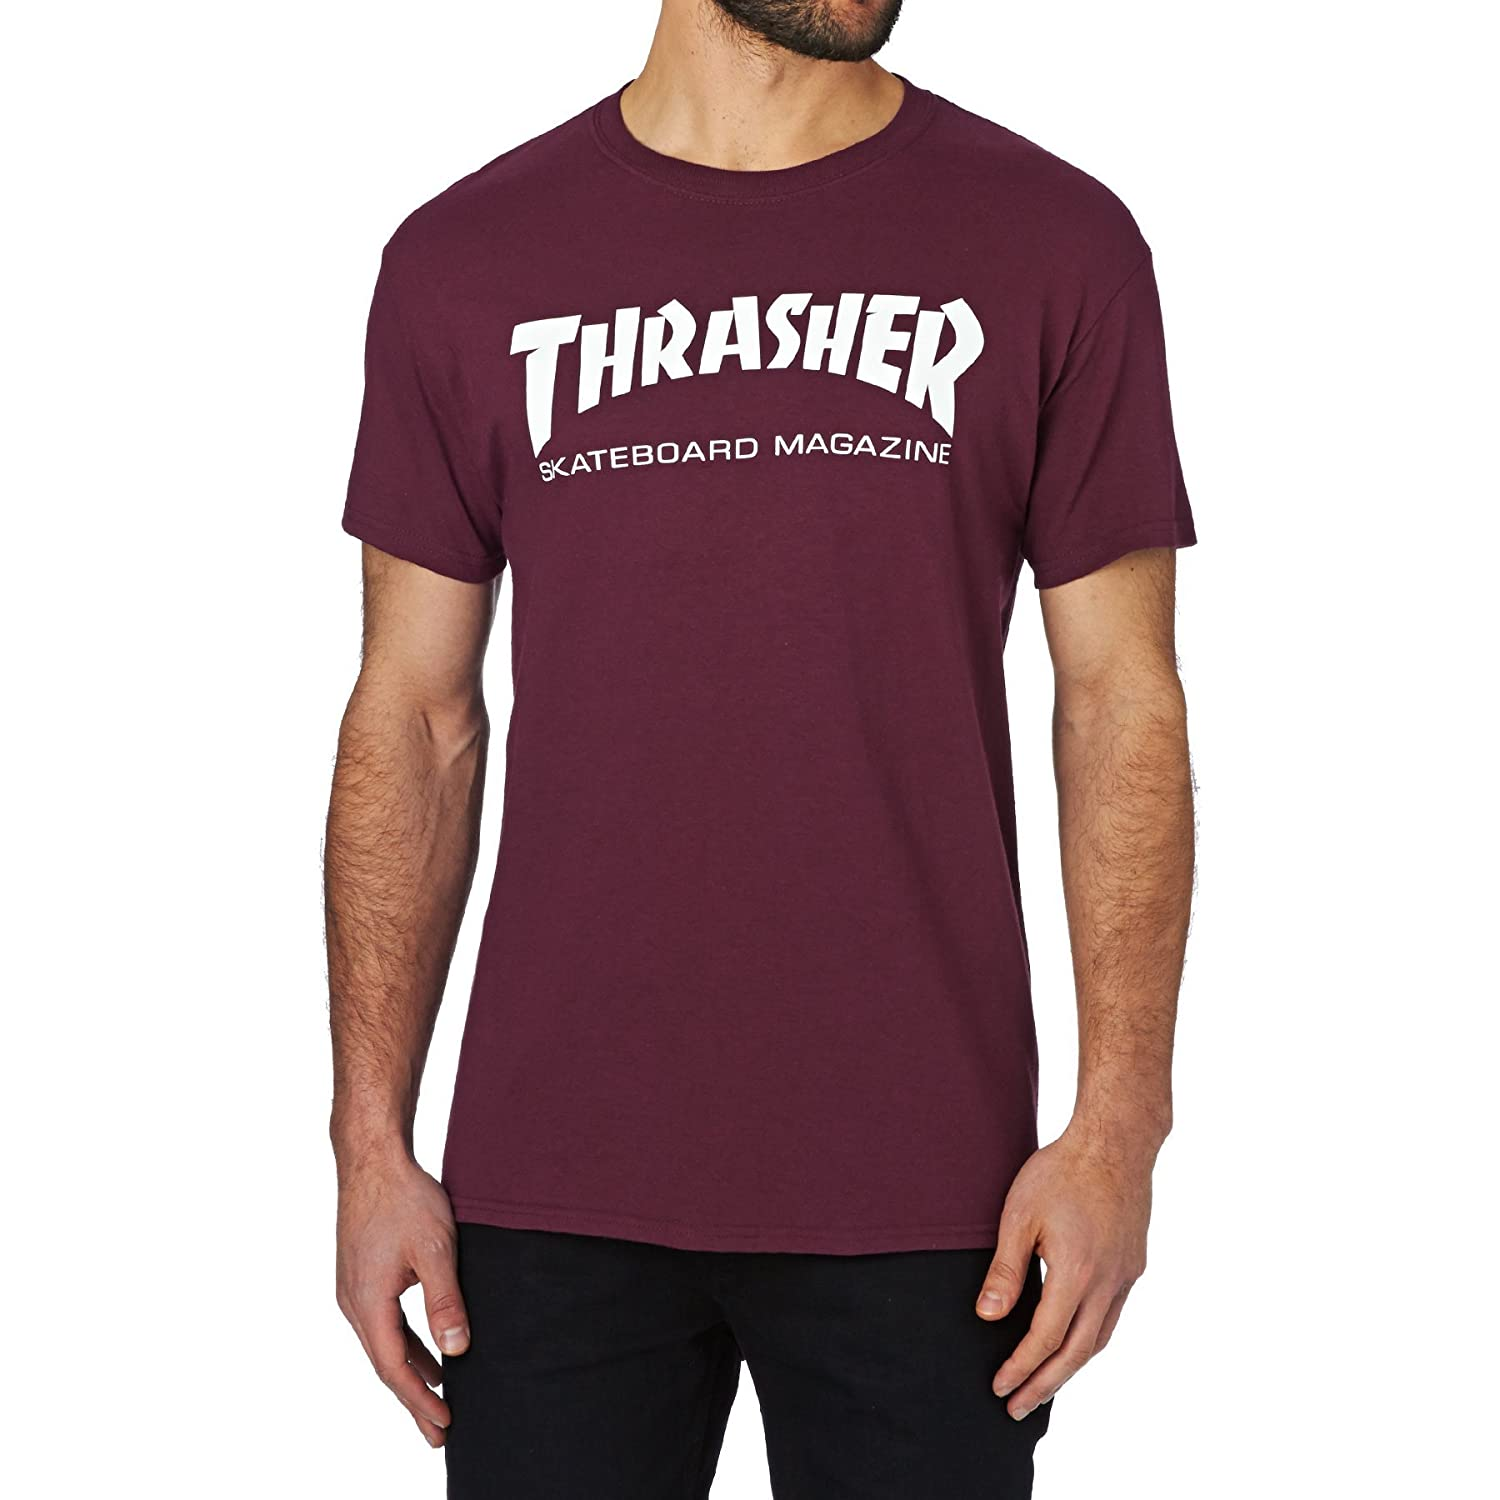 b6fc59cfda83 Amazon.com  Thrasher T Shirt Skate Mag Short Sleeve T-Shirt  Clothing